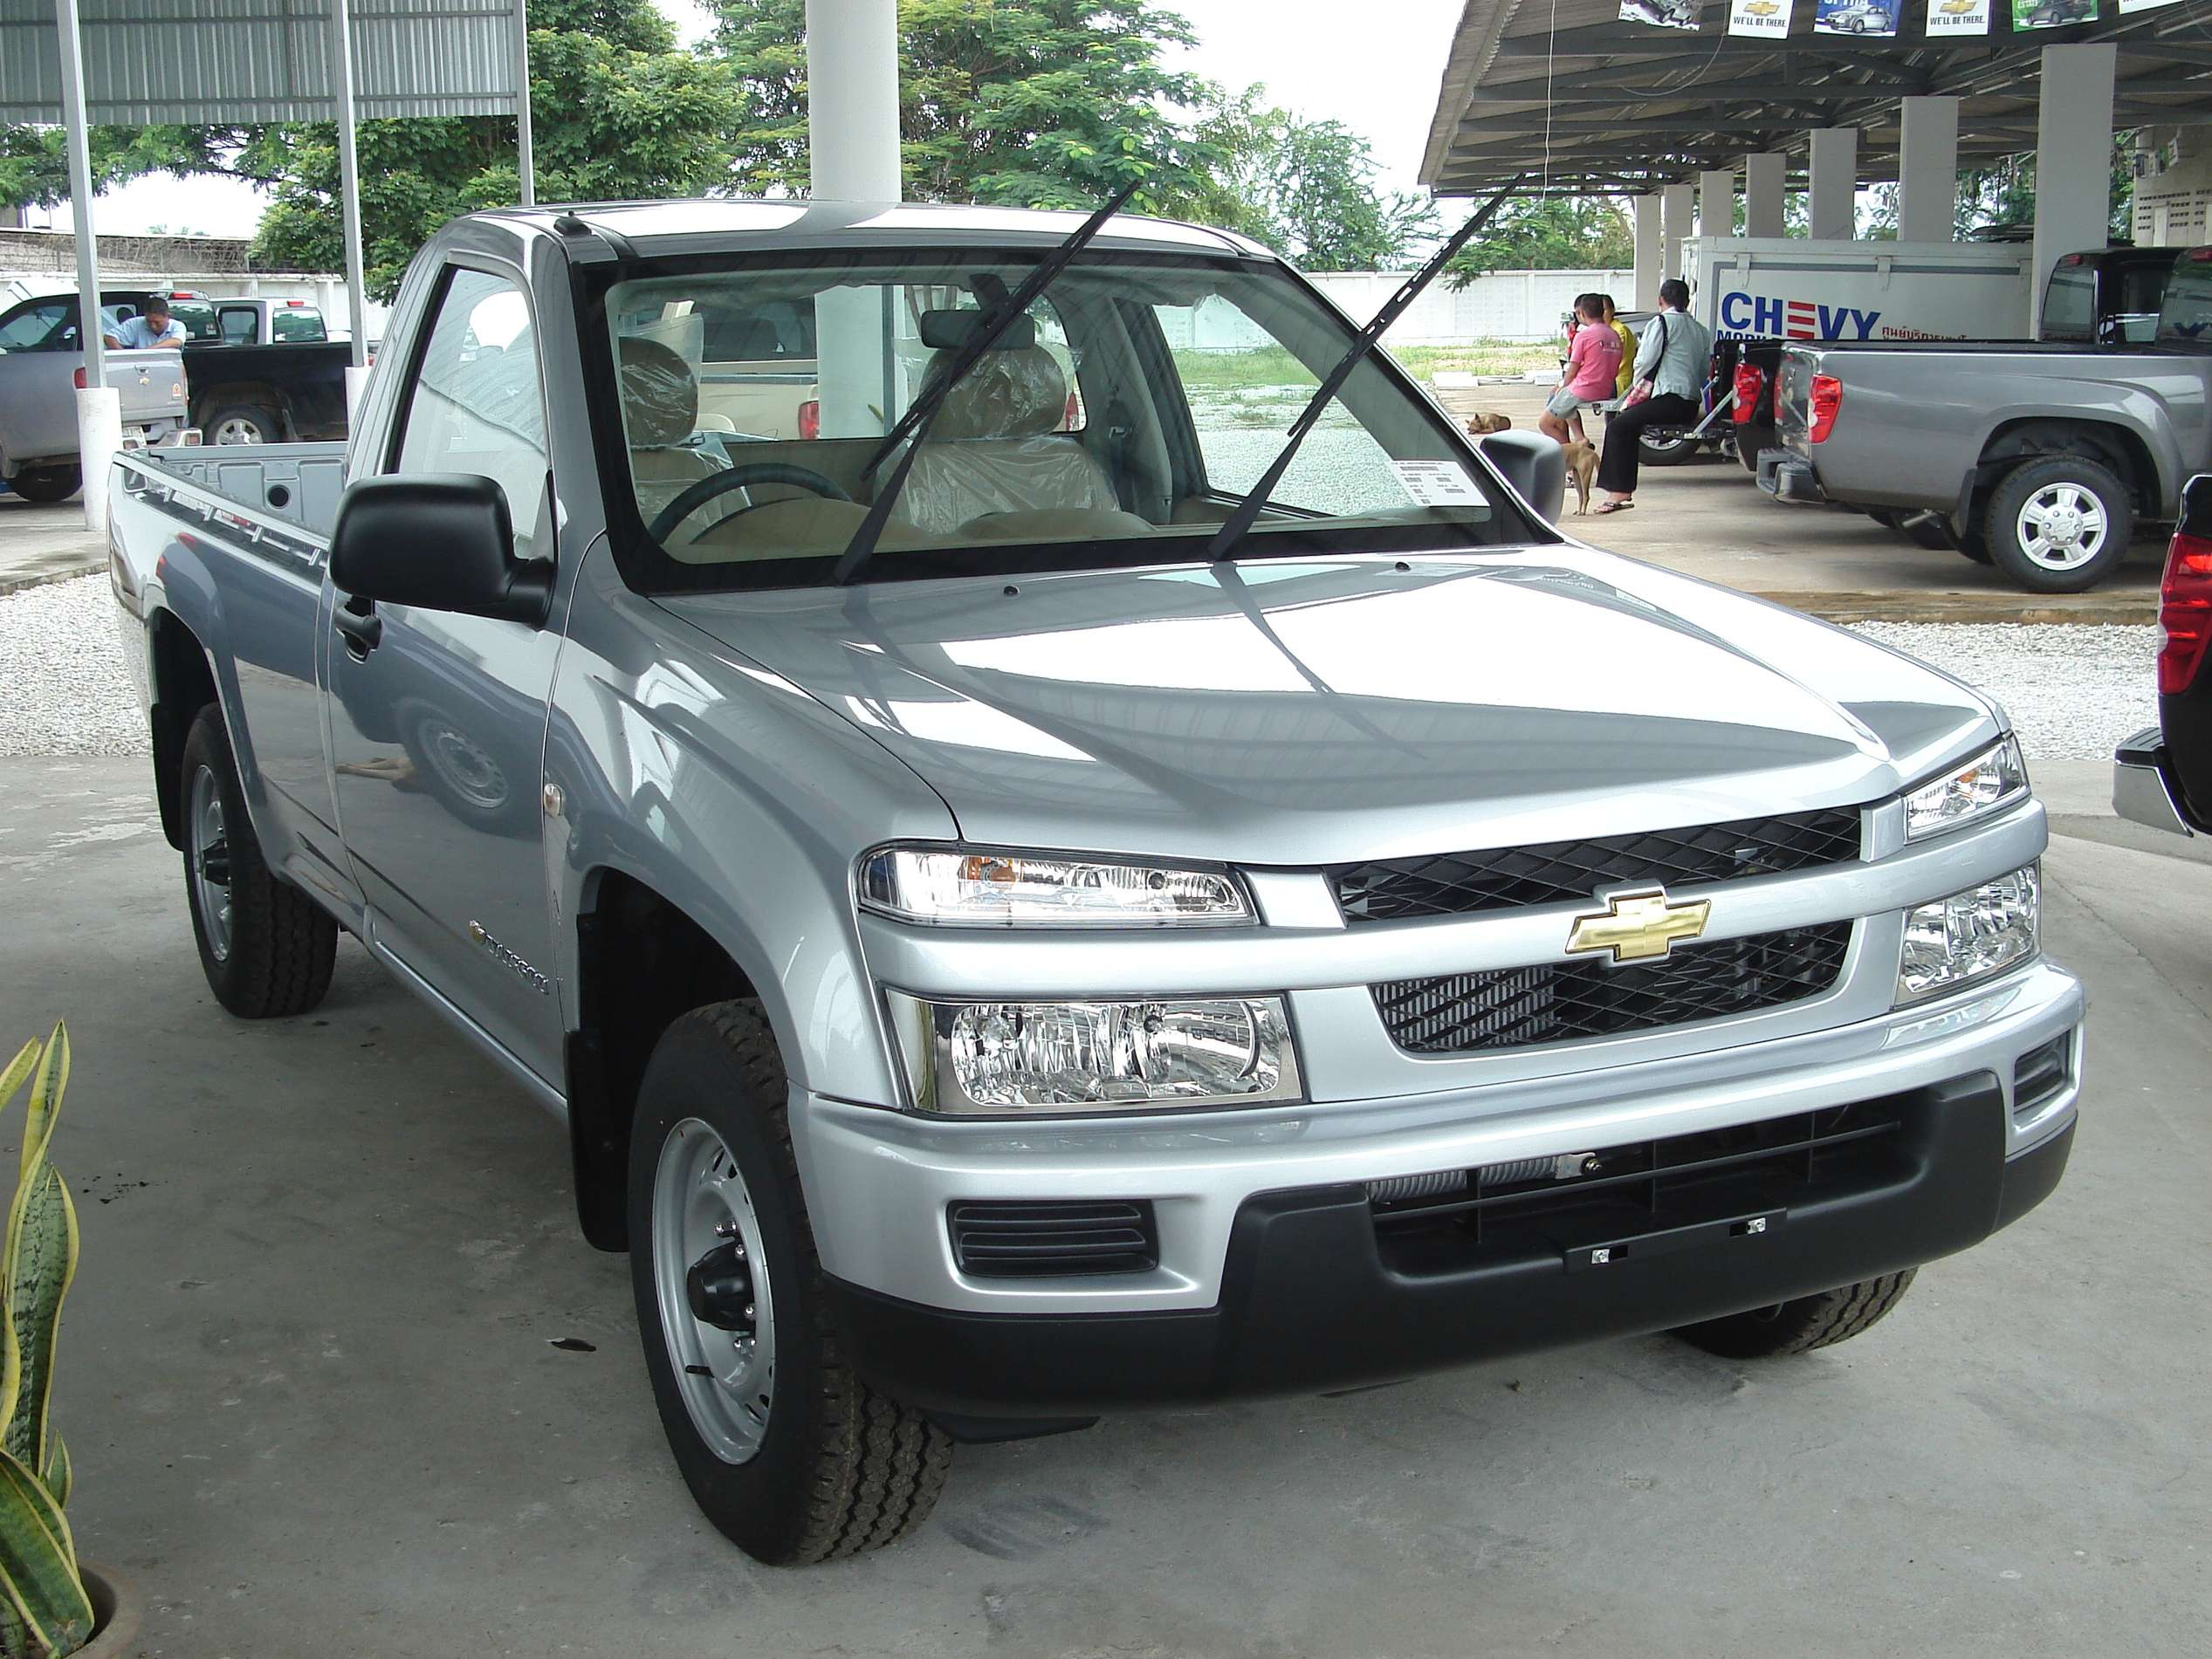 Chevrolet Colorado #9458160